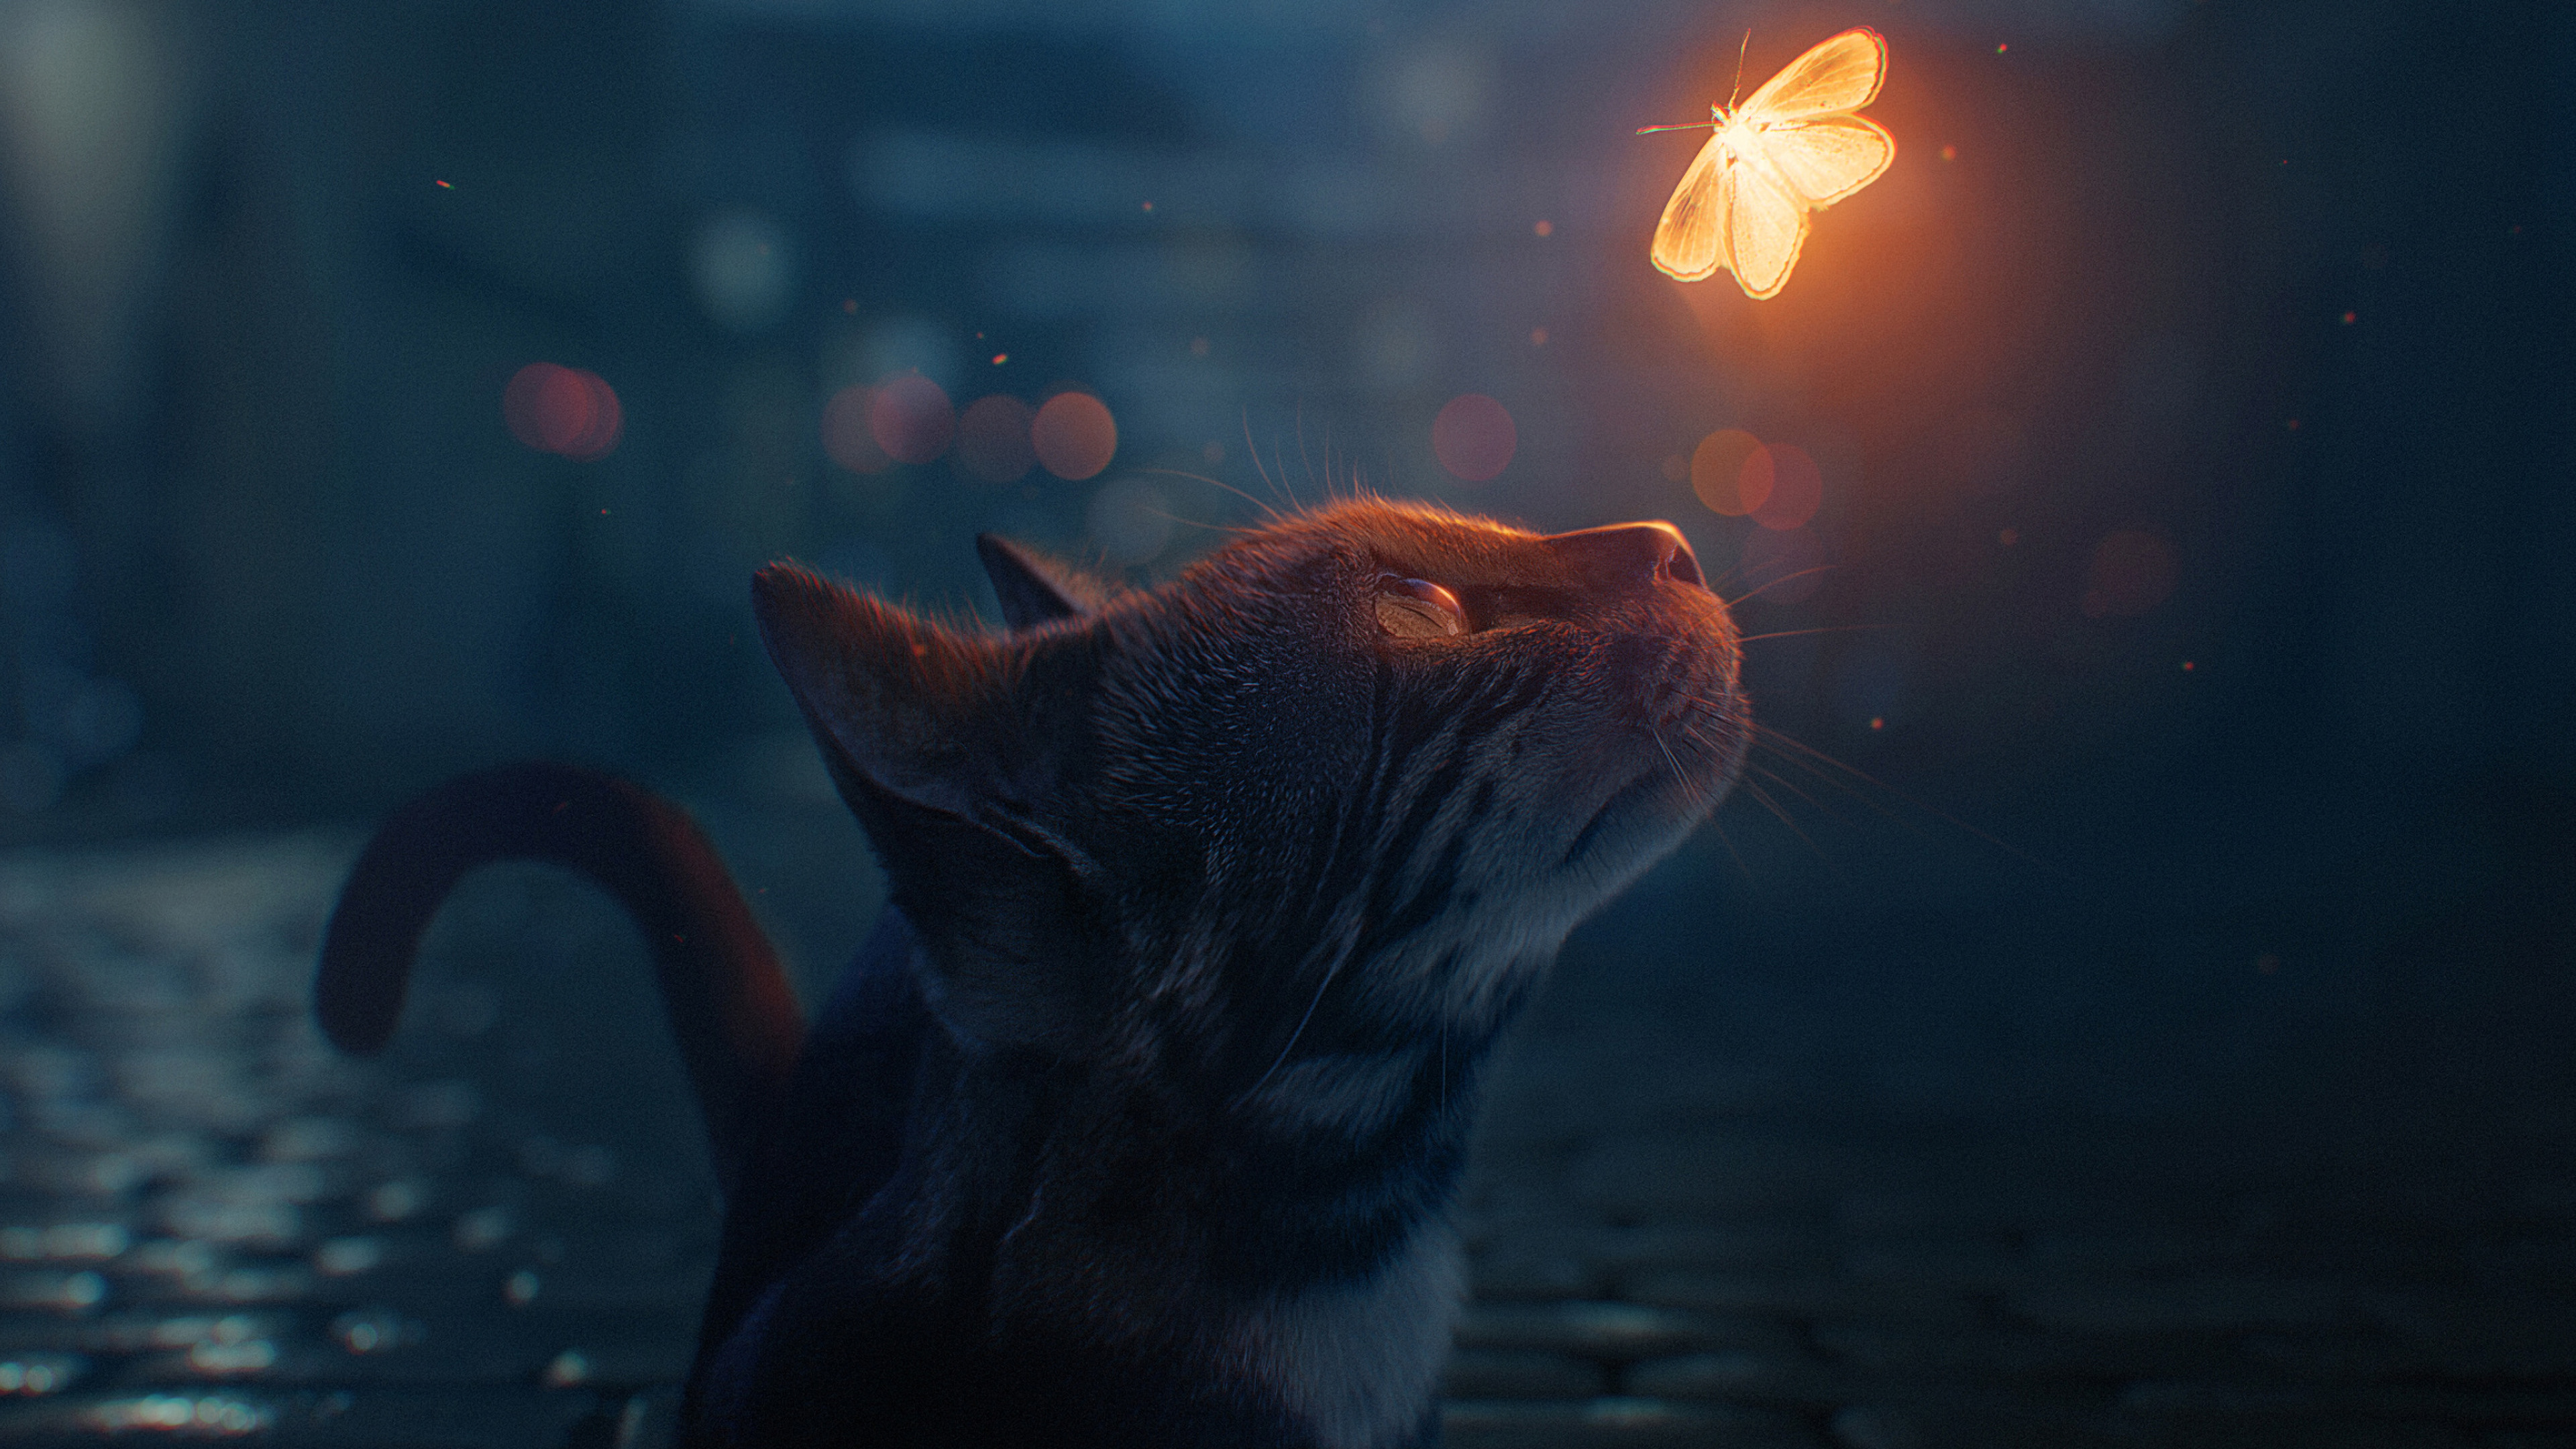 Wallpaper Cat with fantasy butterfly